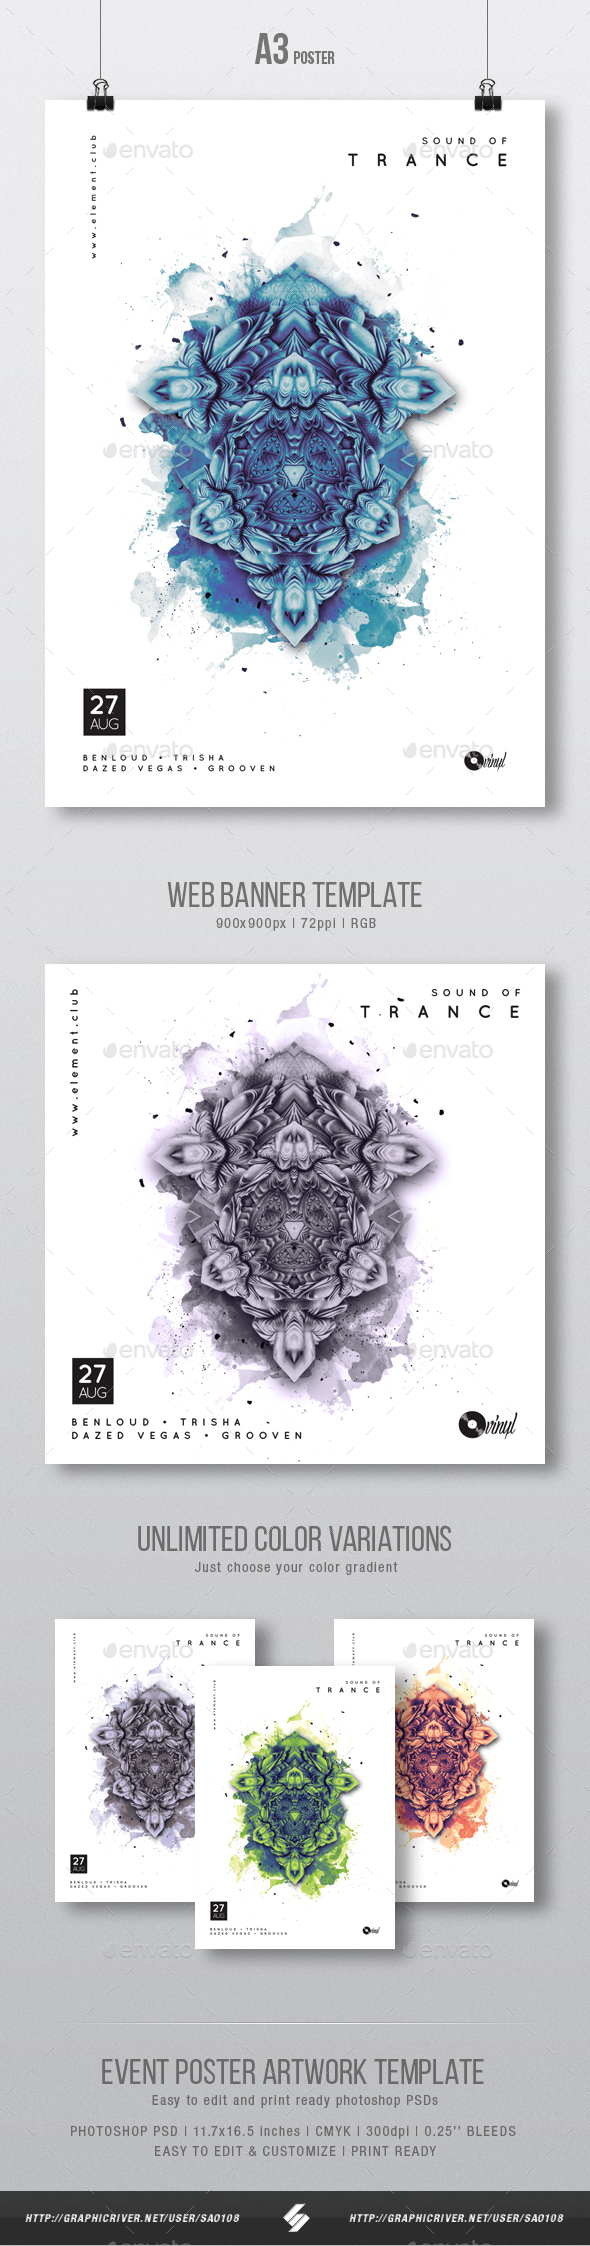 Sound Of Trance - Party Flyer / Poster Artwork Template A3 - Clubs & Parties Events